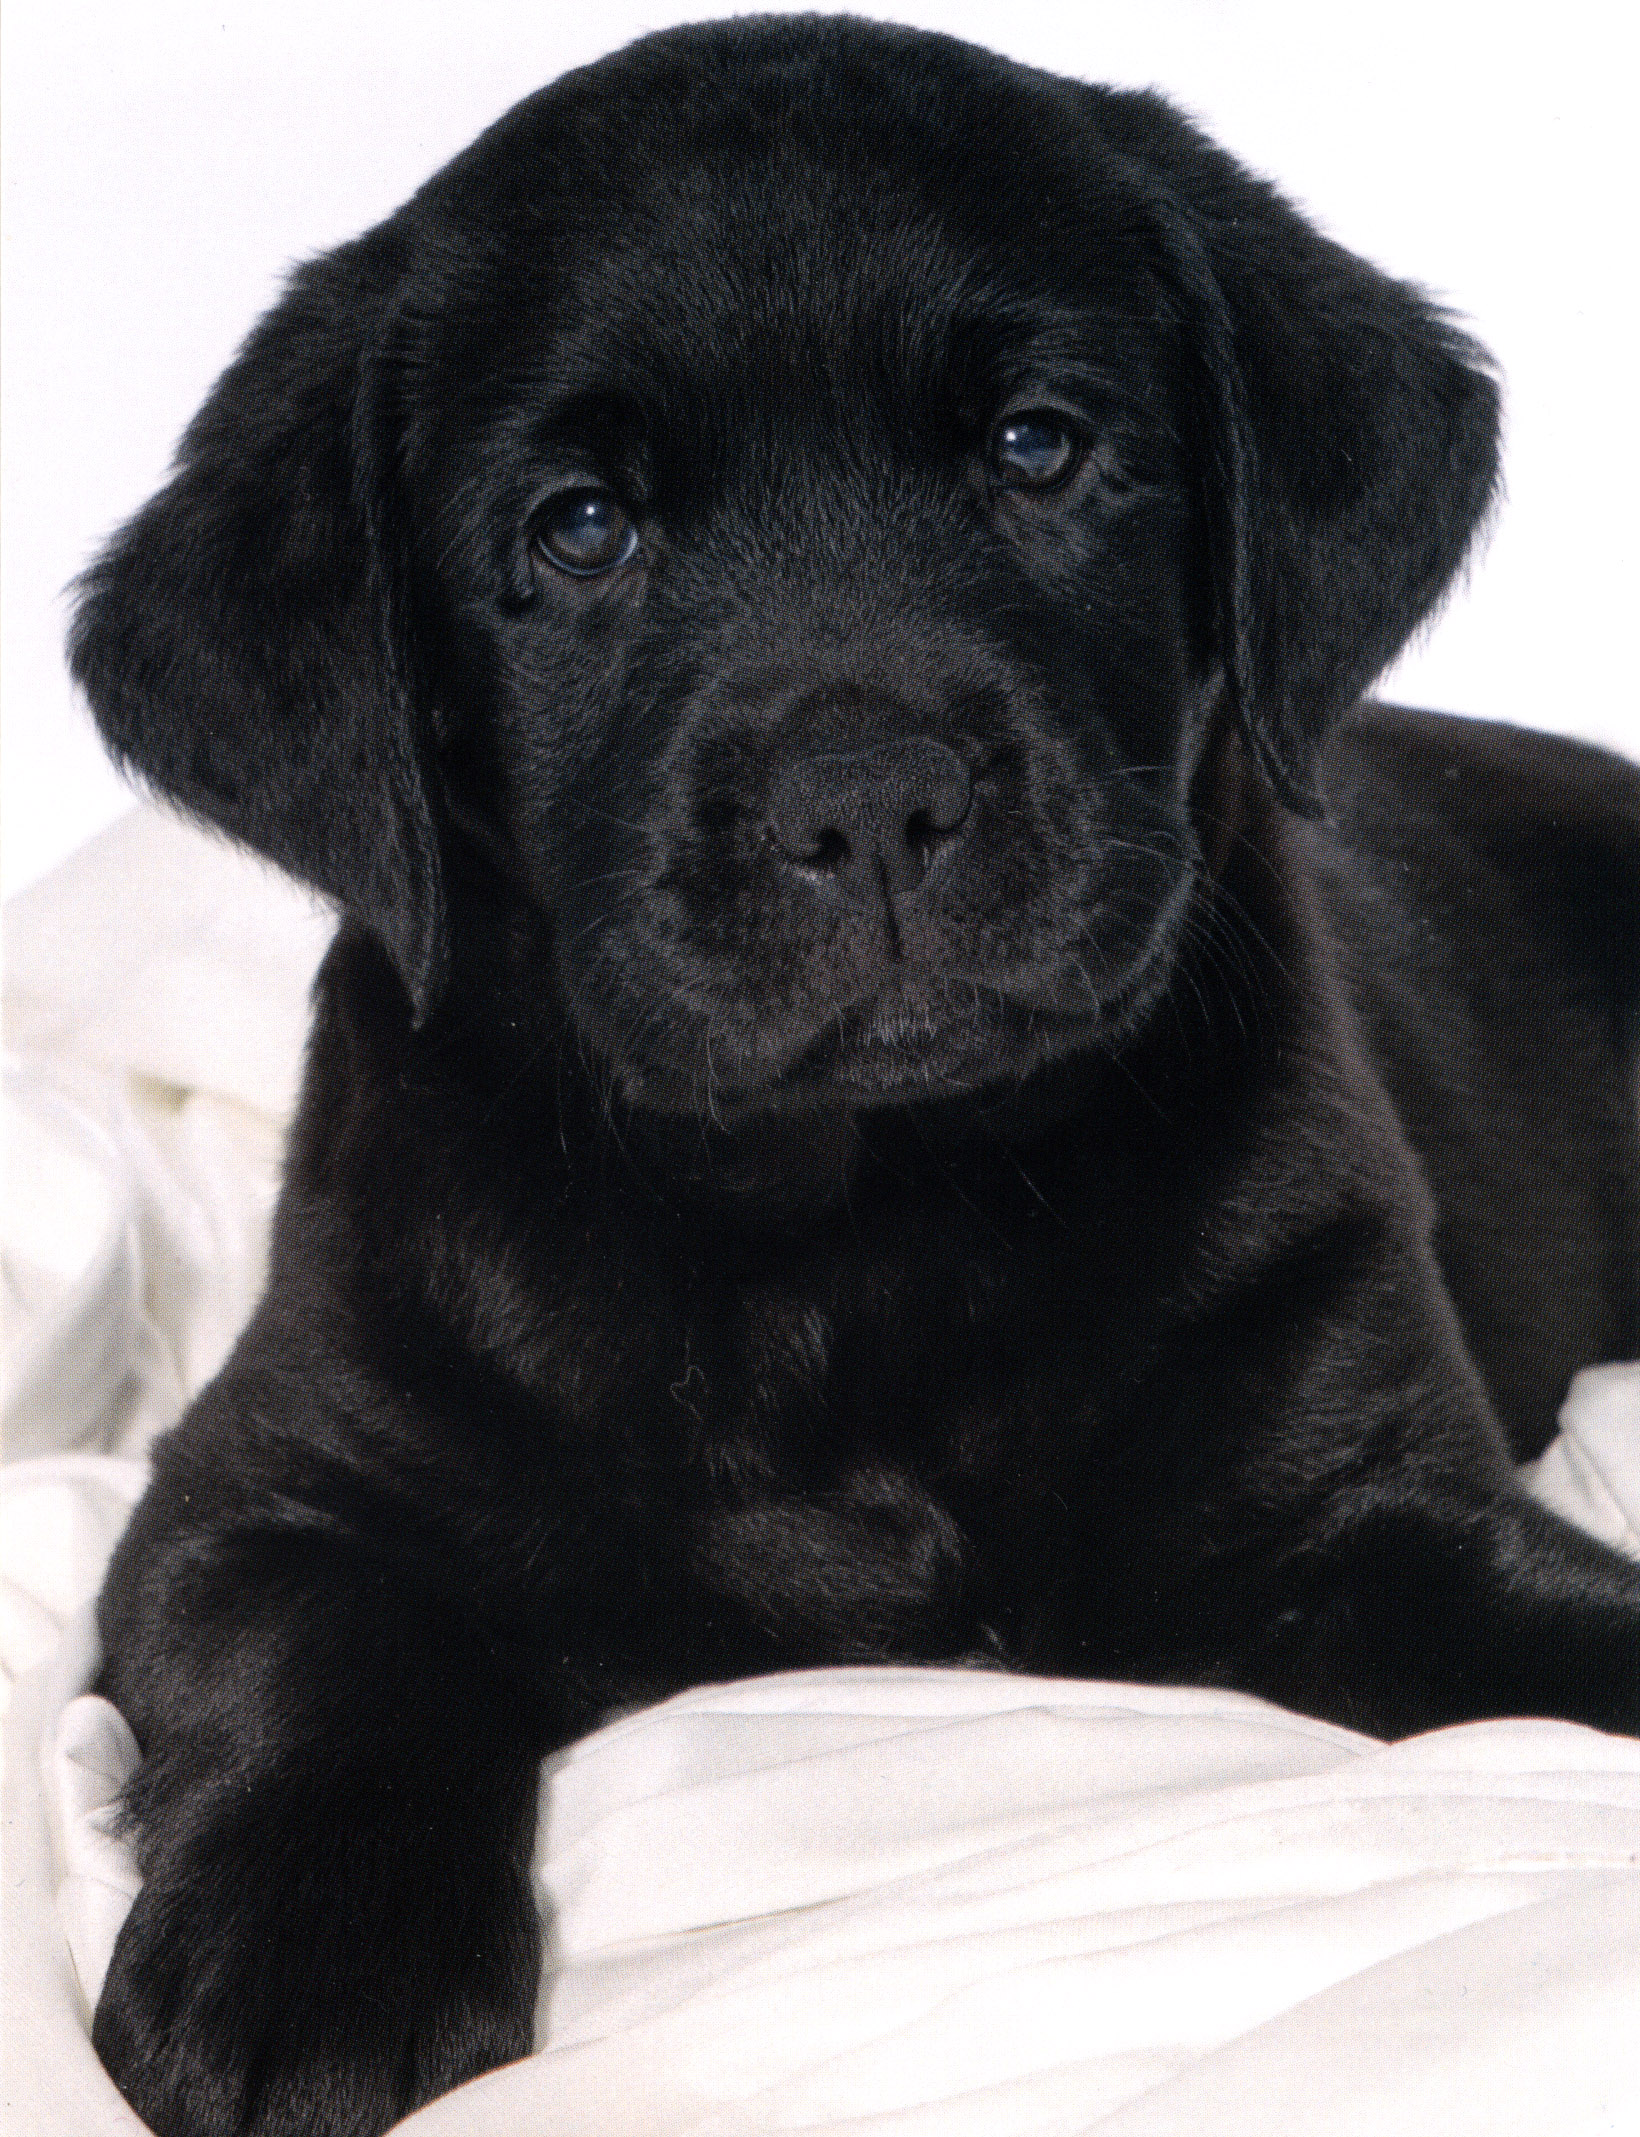 Meet Milo - Click on his nose to see whats happening with our Sponsored Guide Dog Milo.